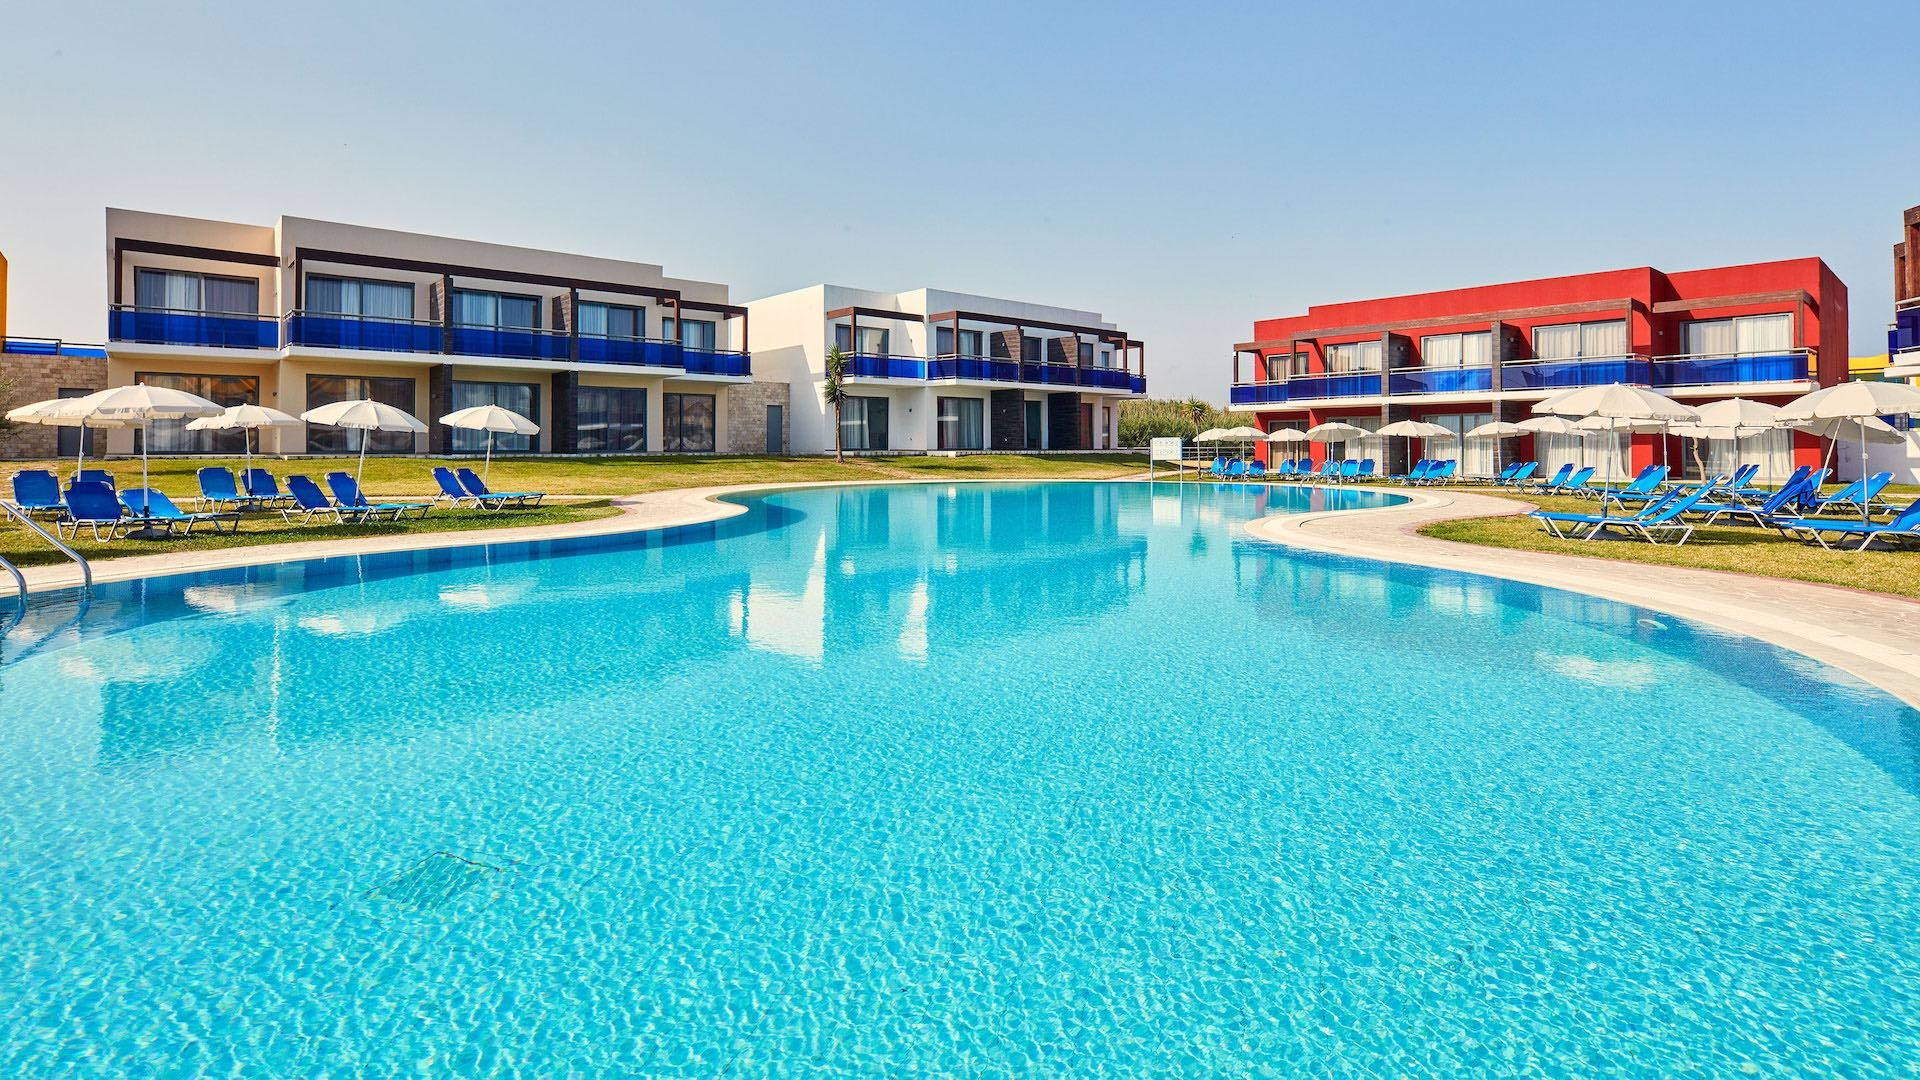 5* All Senses Nautica Blue Exclusive Resort & Spa - Φανές, Ρόδος εικόνα